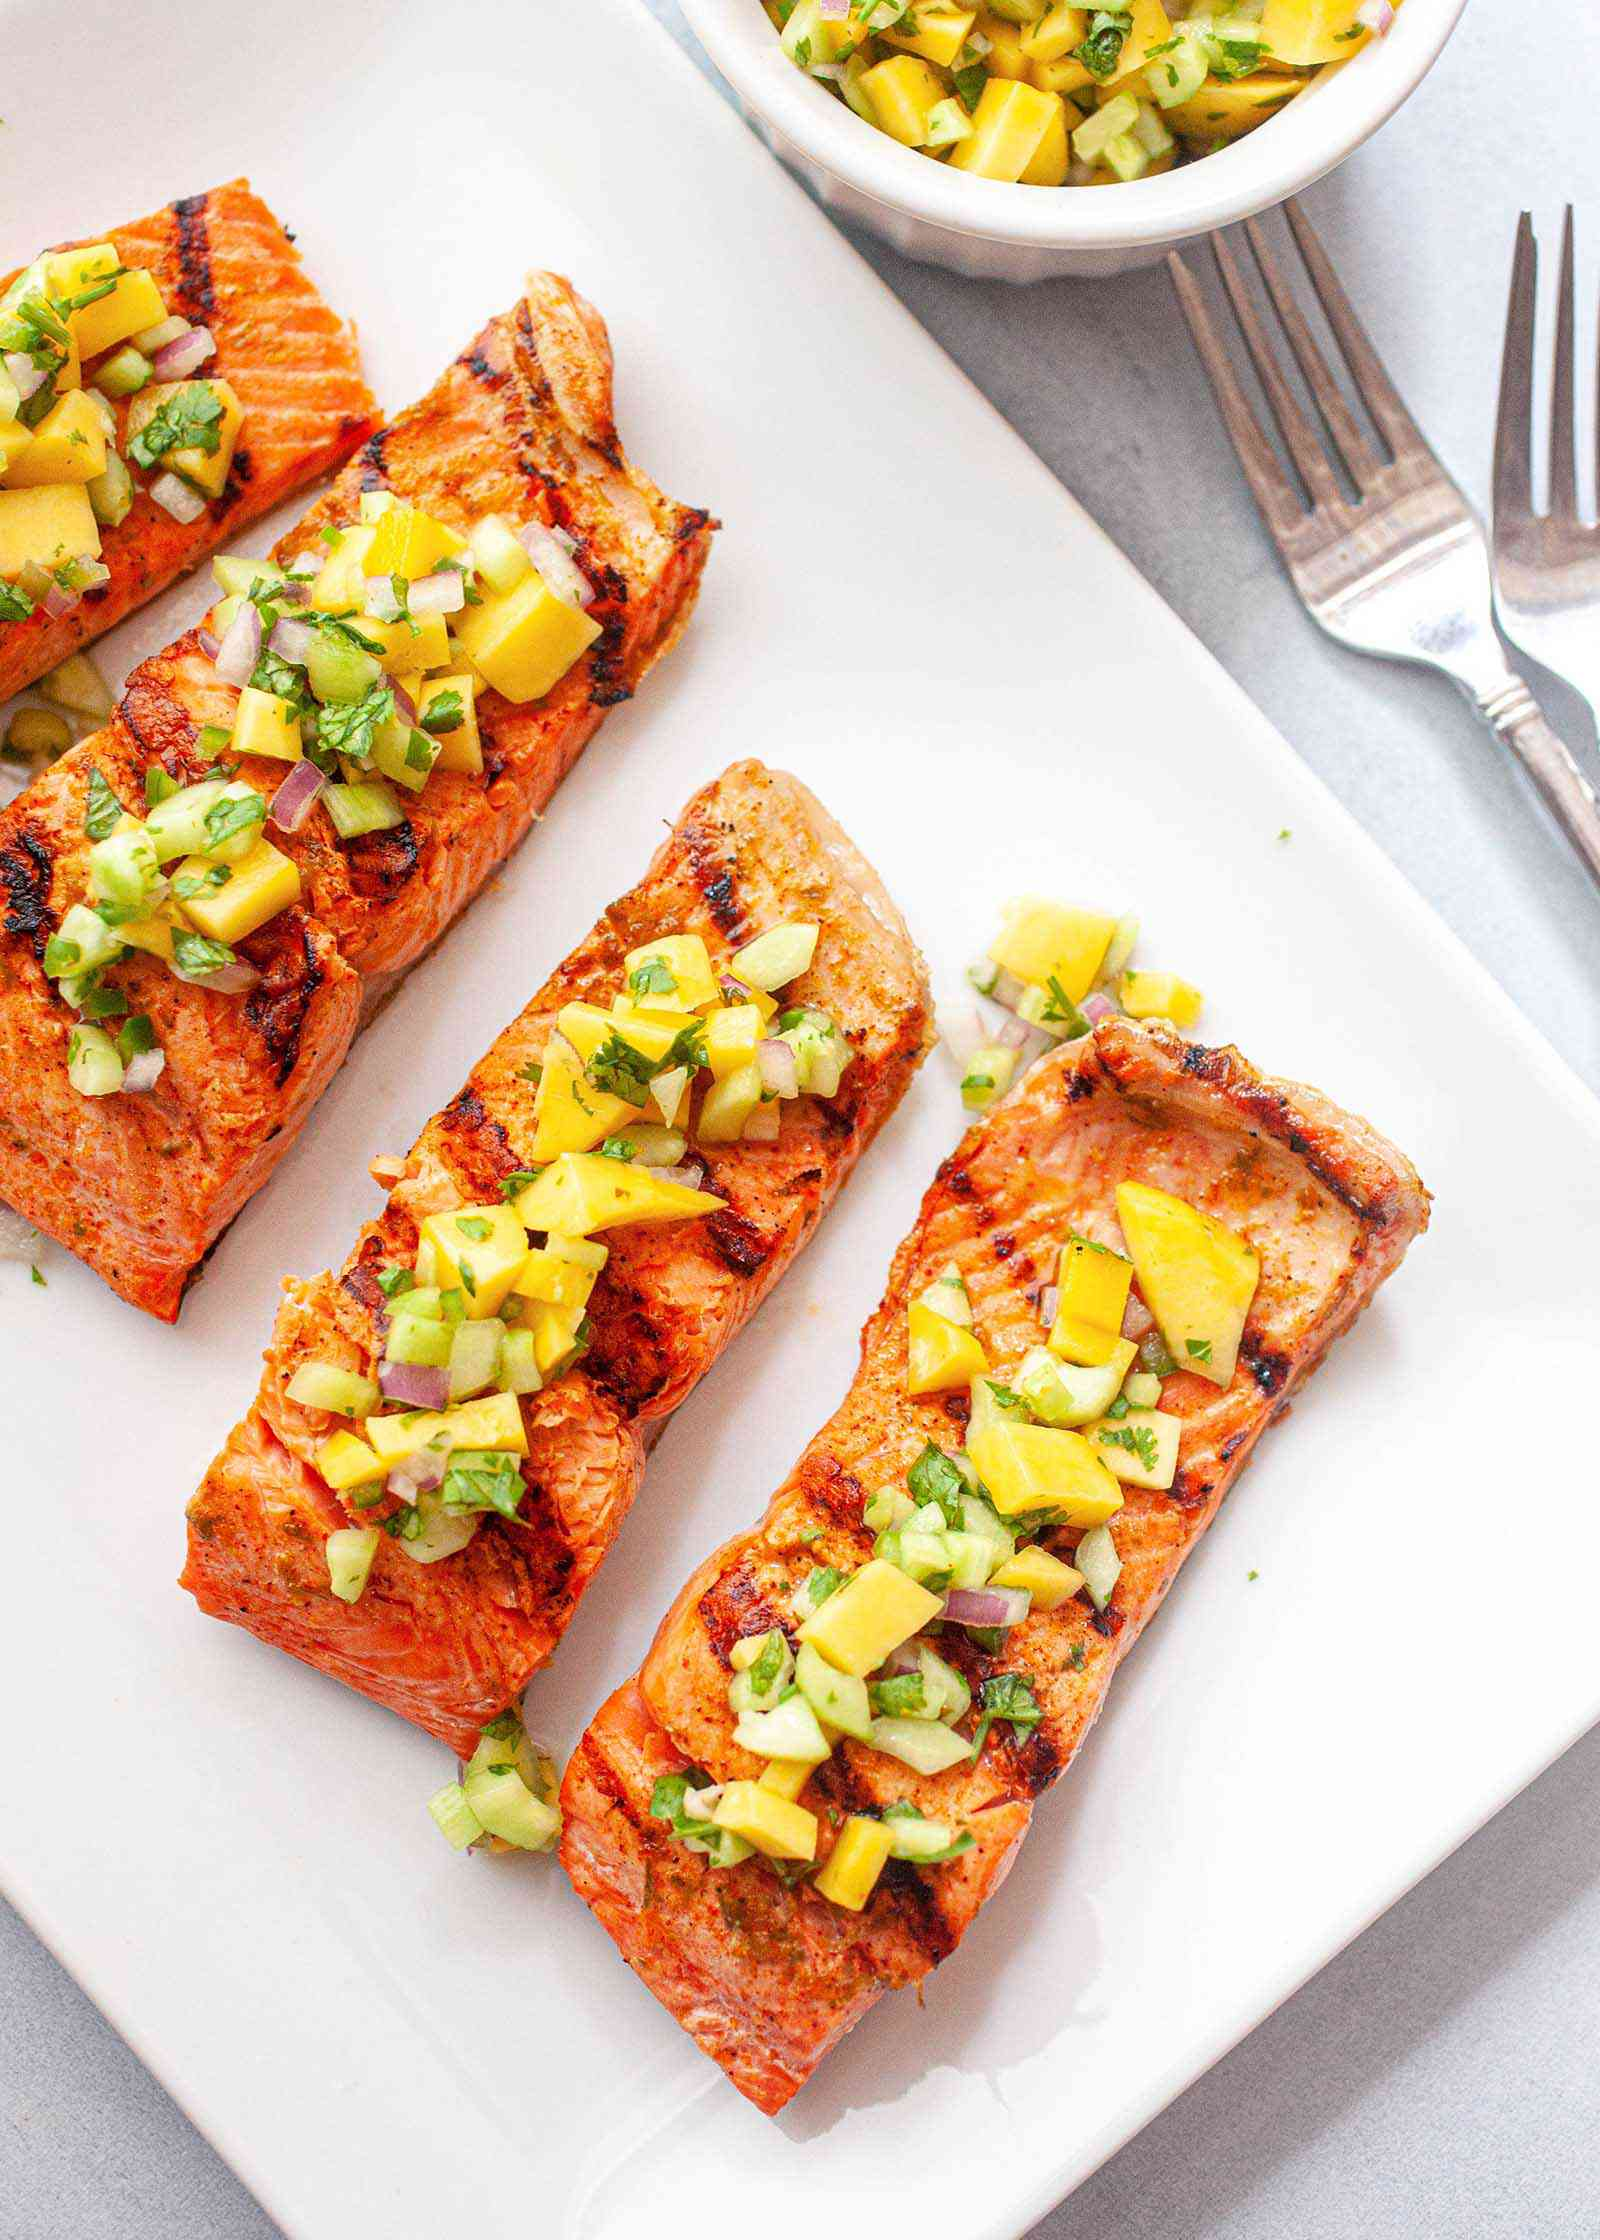 Grilled Salmon with Cucumber Salsa - grilled salmon portions on a plate with fresh salsa